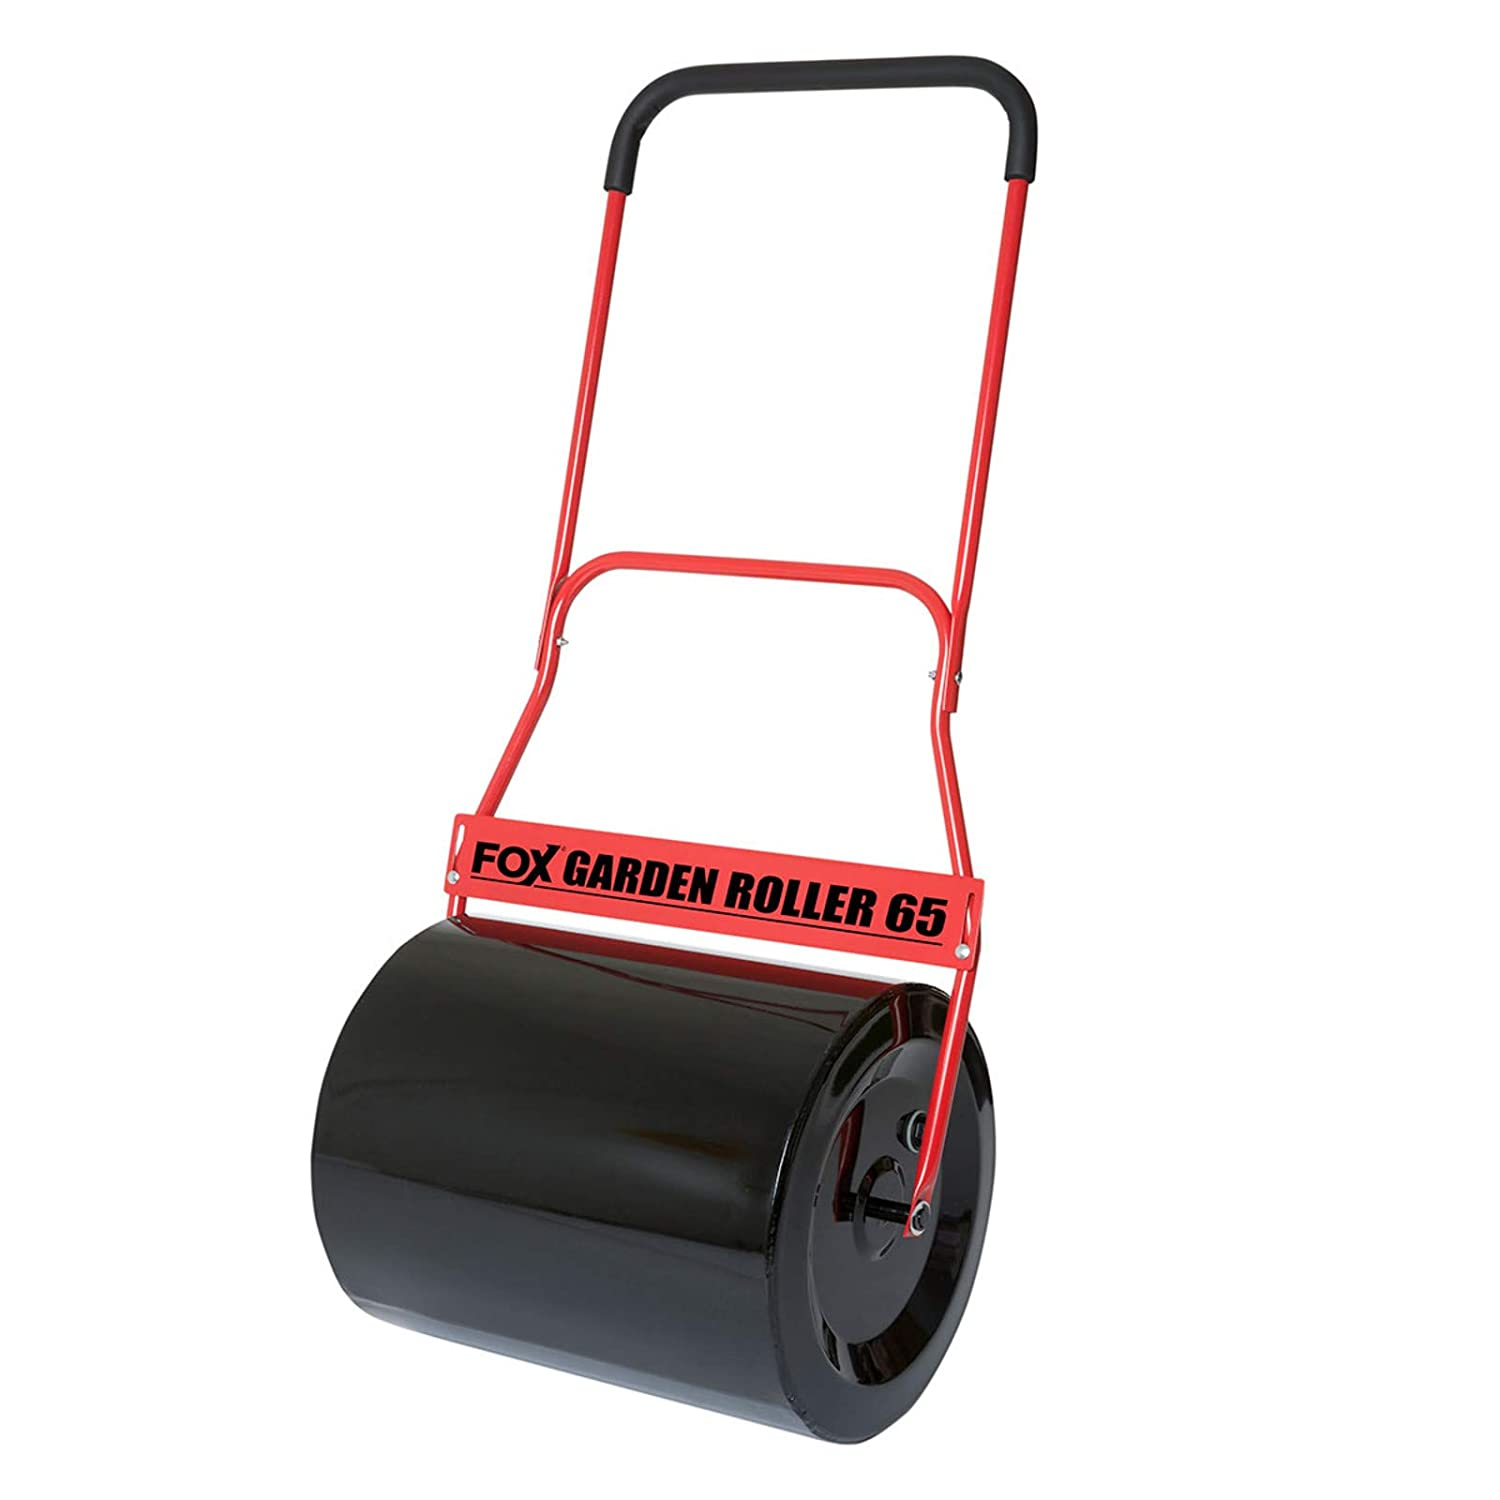 FOX 65 Litre Steel Garden Lawn Roller Heavy Duty 100% Steel 500mm Working Width with Comfort Soft Grip and Scraper Bar - Fill With Water/Sand / Cement